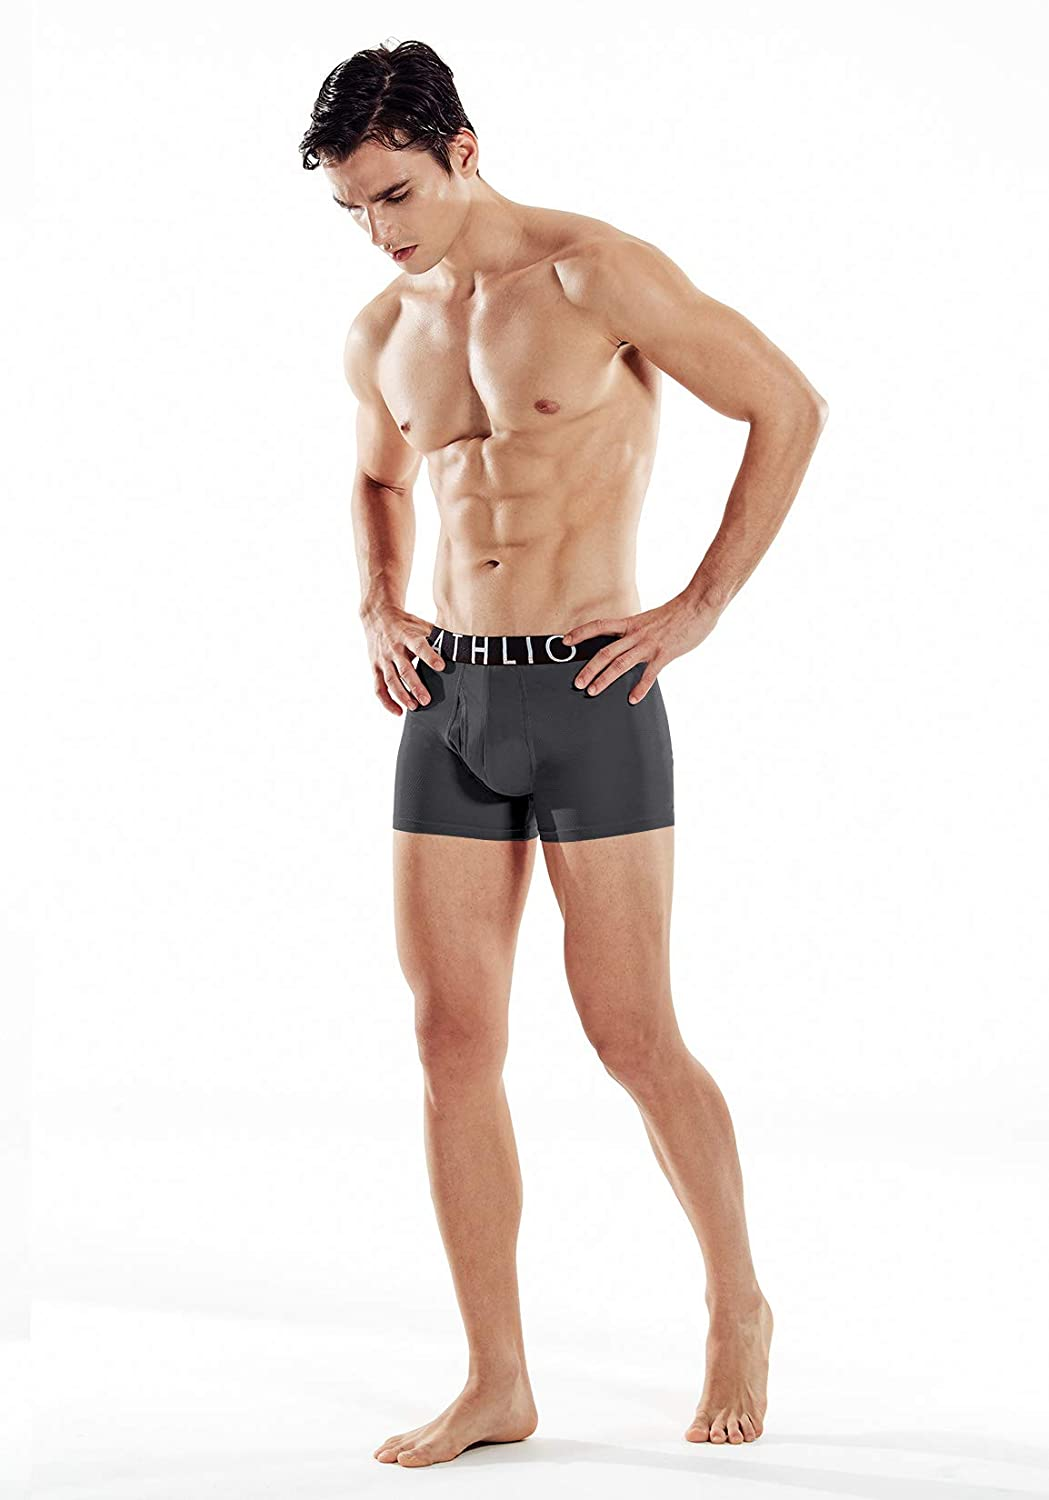 ATHLIO Mens Relaxed Stretch 3 inches Open-Fly Cool Dry Brief Mesh Underwear Trunk Pack of 3